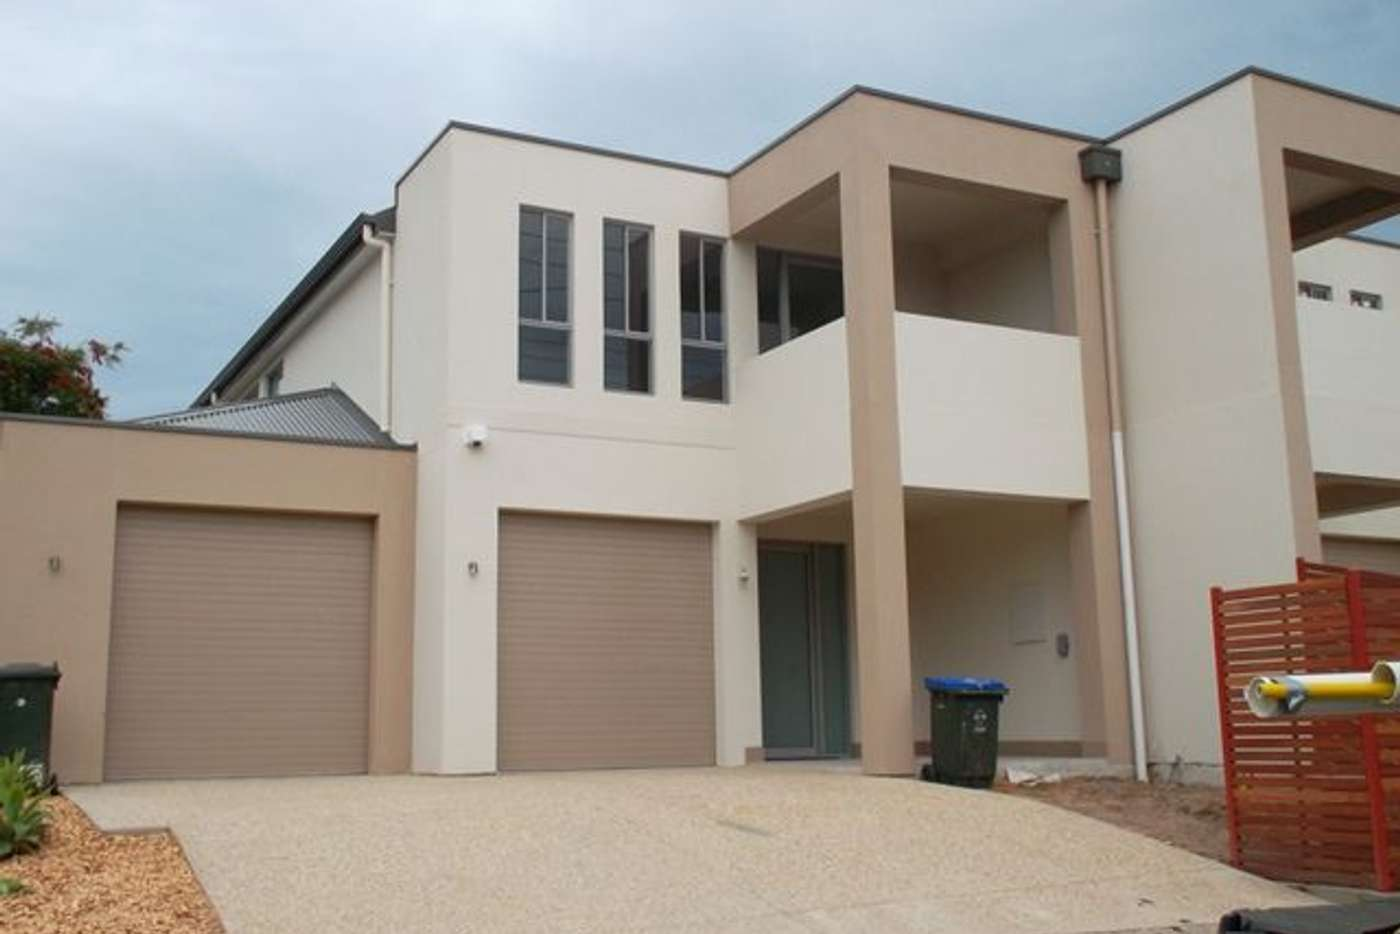 Main view of Homely house listing, 85 Military Road, West Beach SA 5024